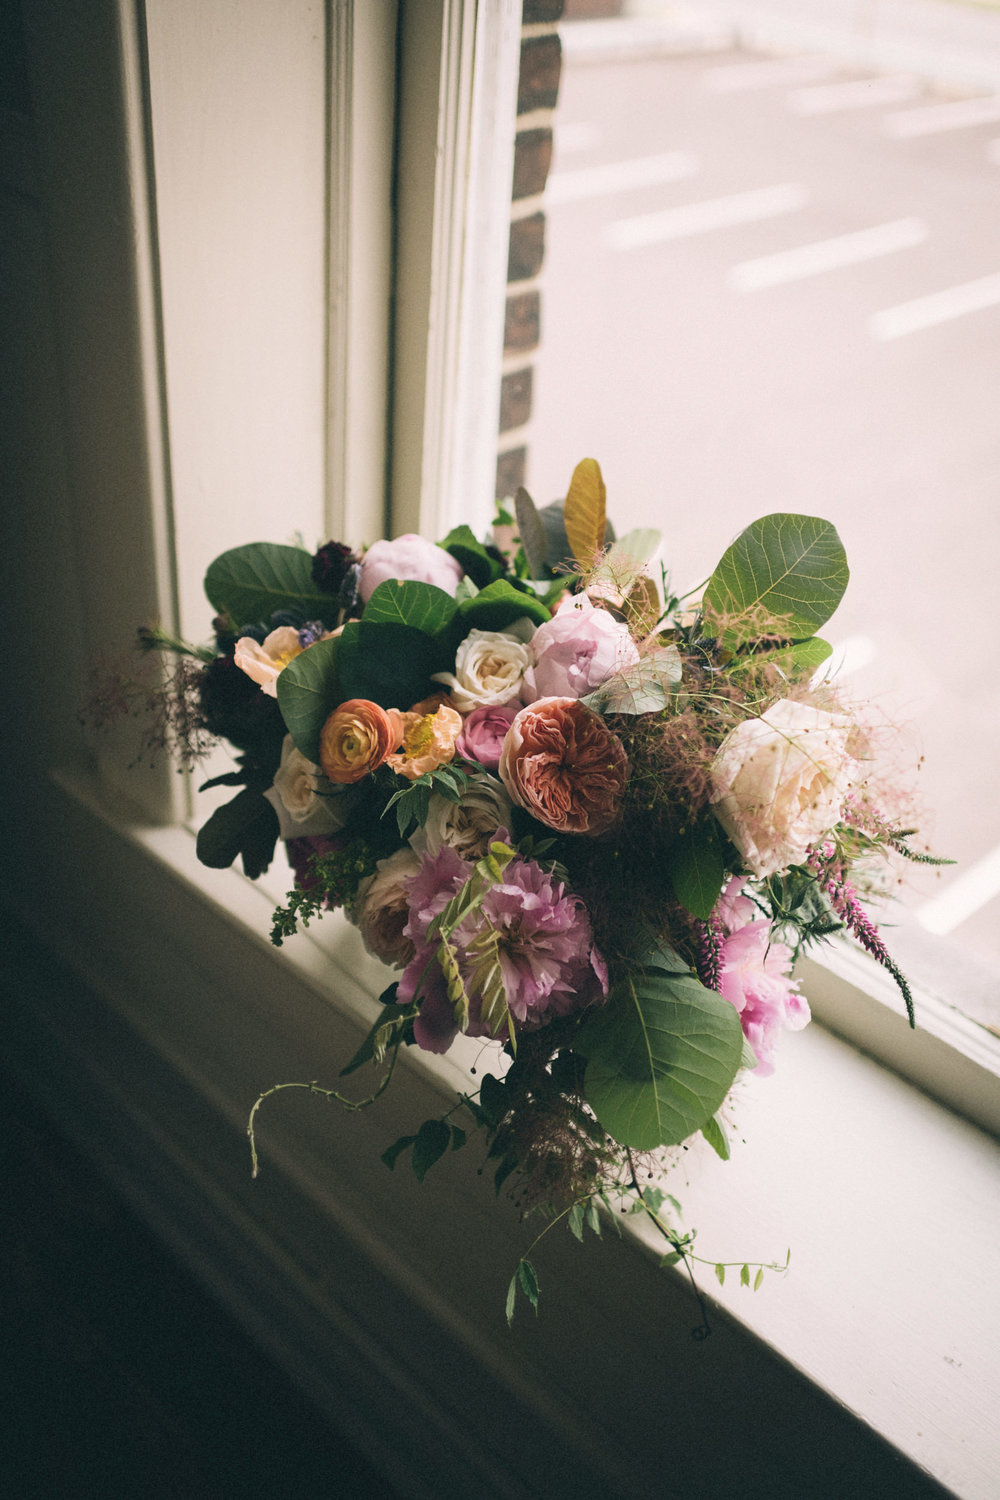 lauren-dean-wedding-grand-lodge-kentucky-sarah-katherine-davis-photography-flowers